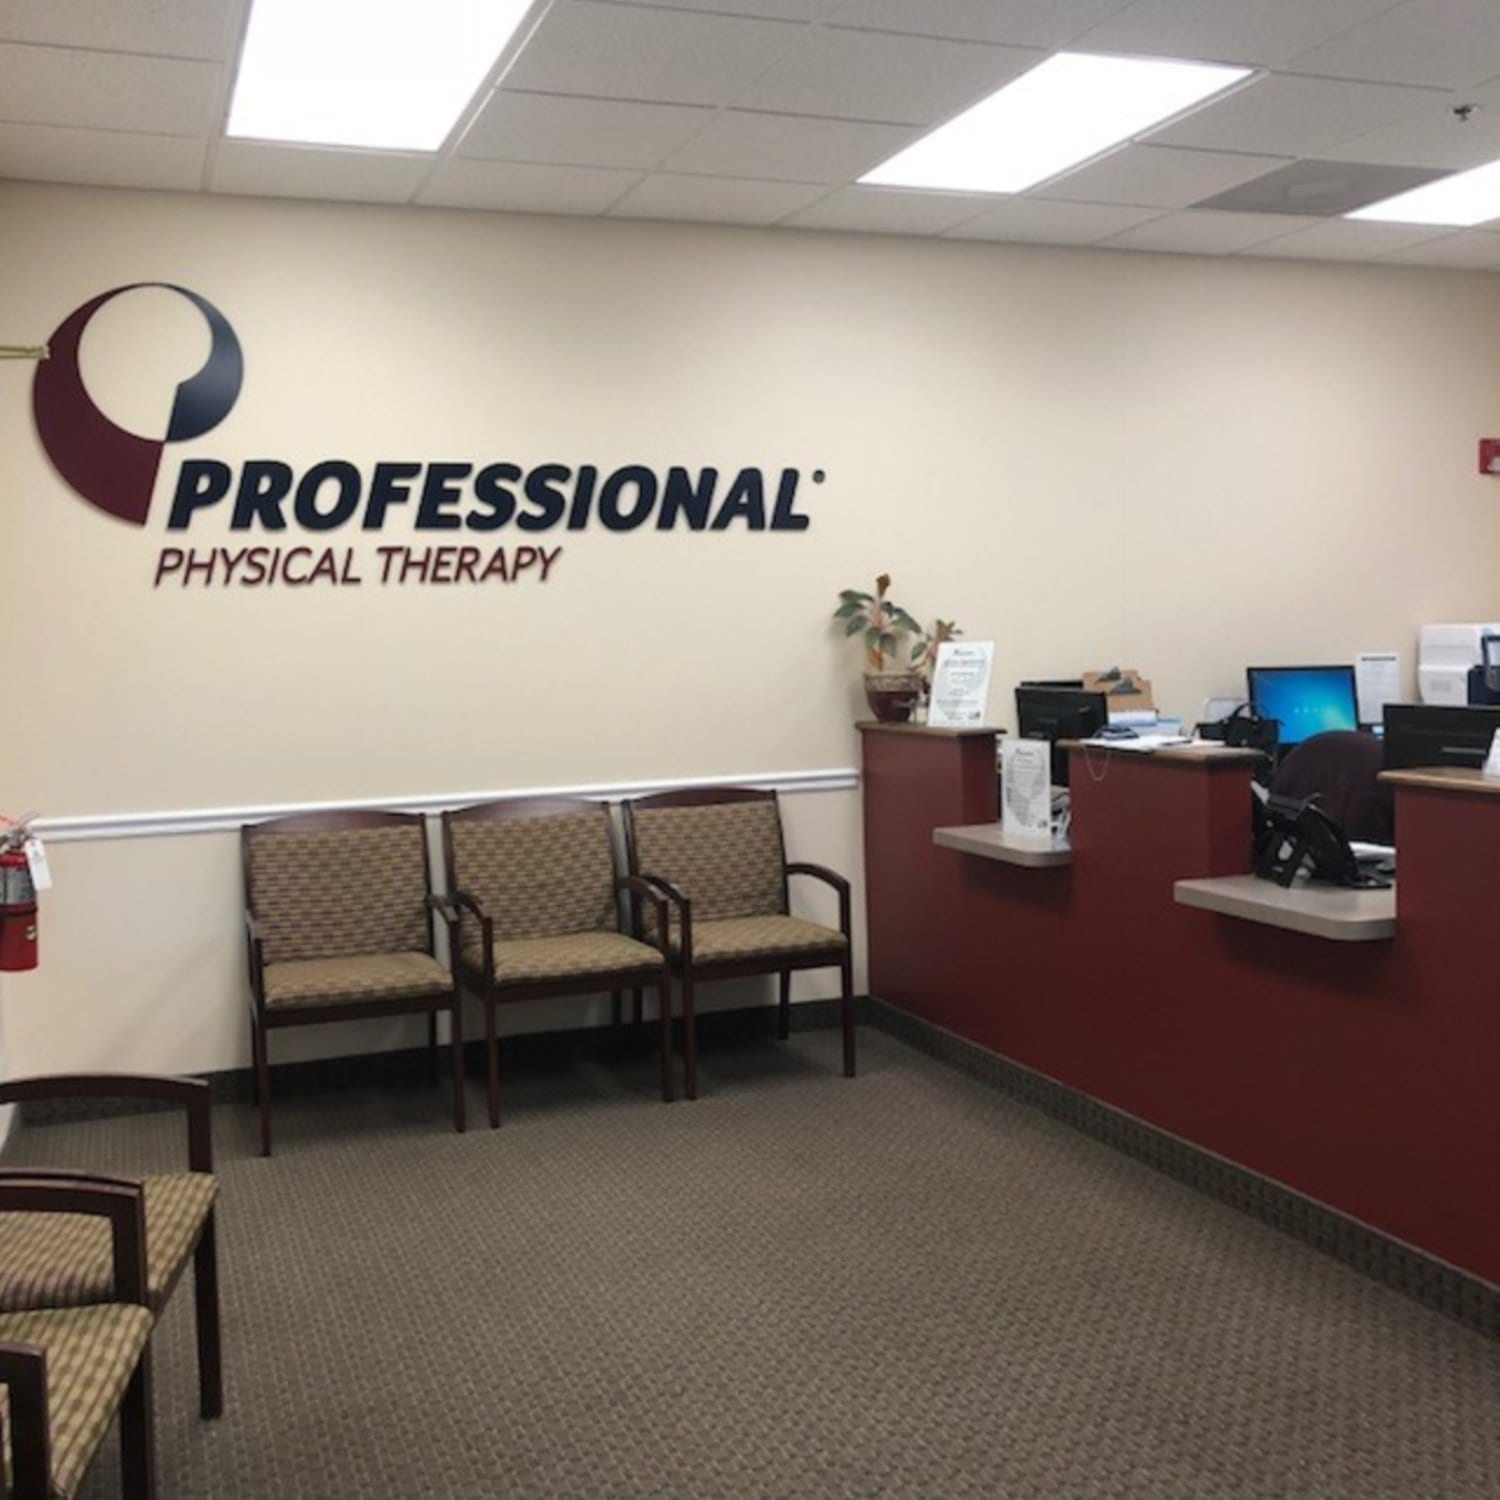 An image of the front desk and waiting area at our physical therapy clinic in Hazlet, New Jersey. The chairs are brown and the desk is red.